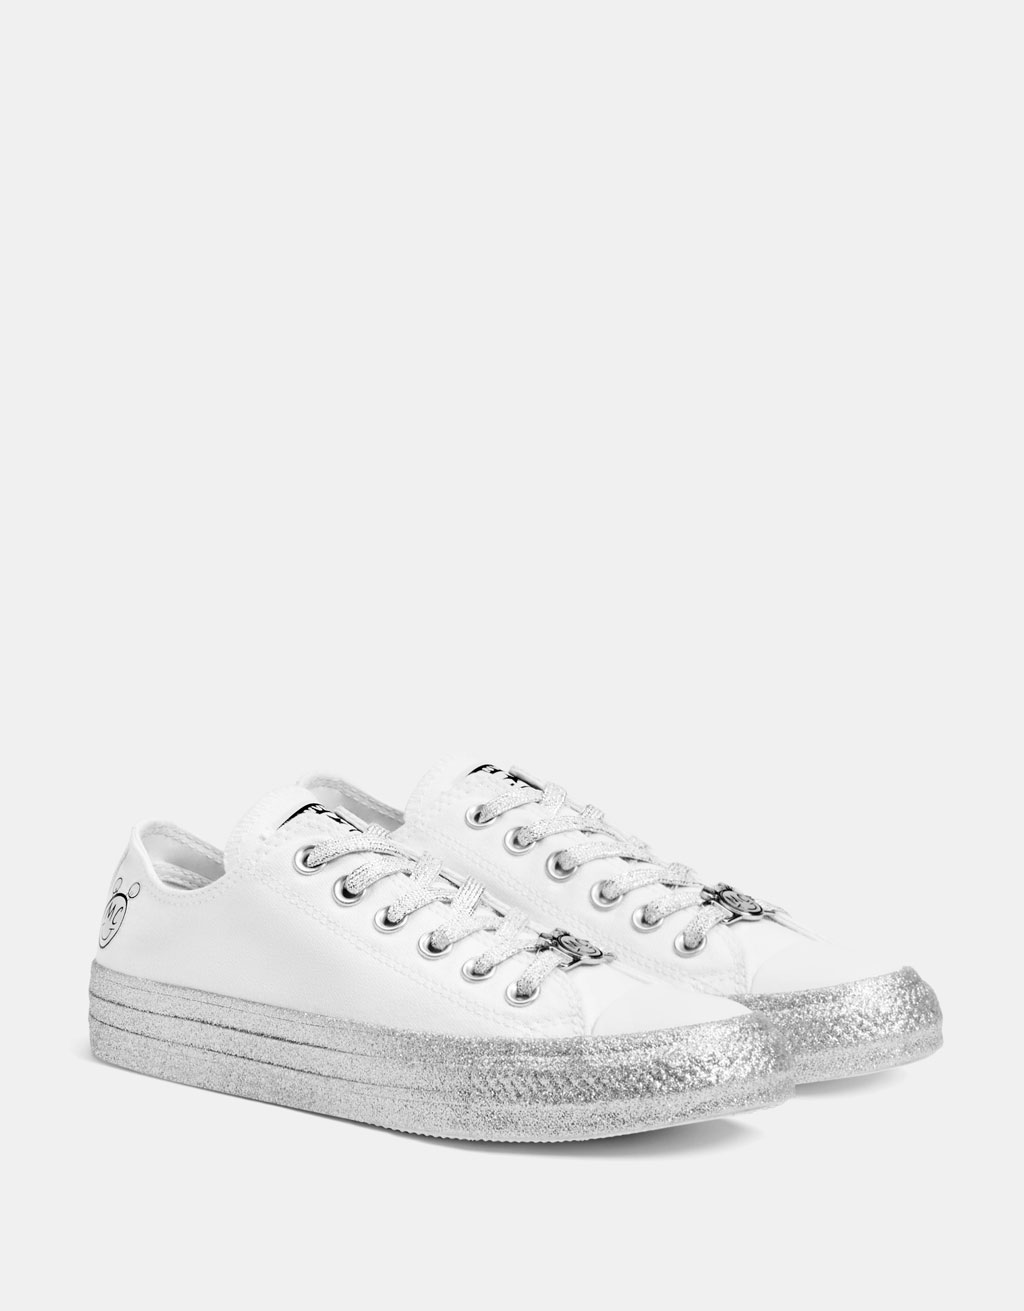 Converse X Miley Cyrus fabric sneakers